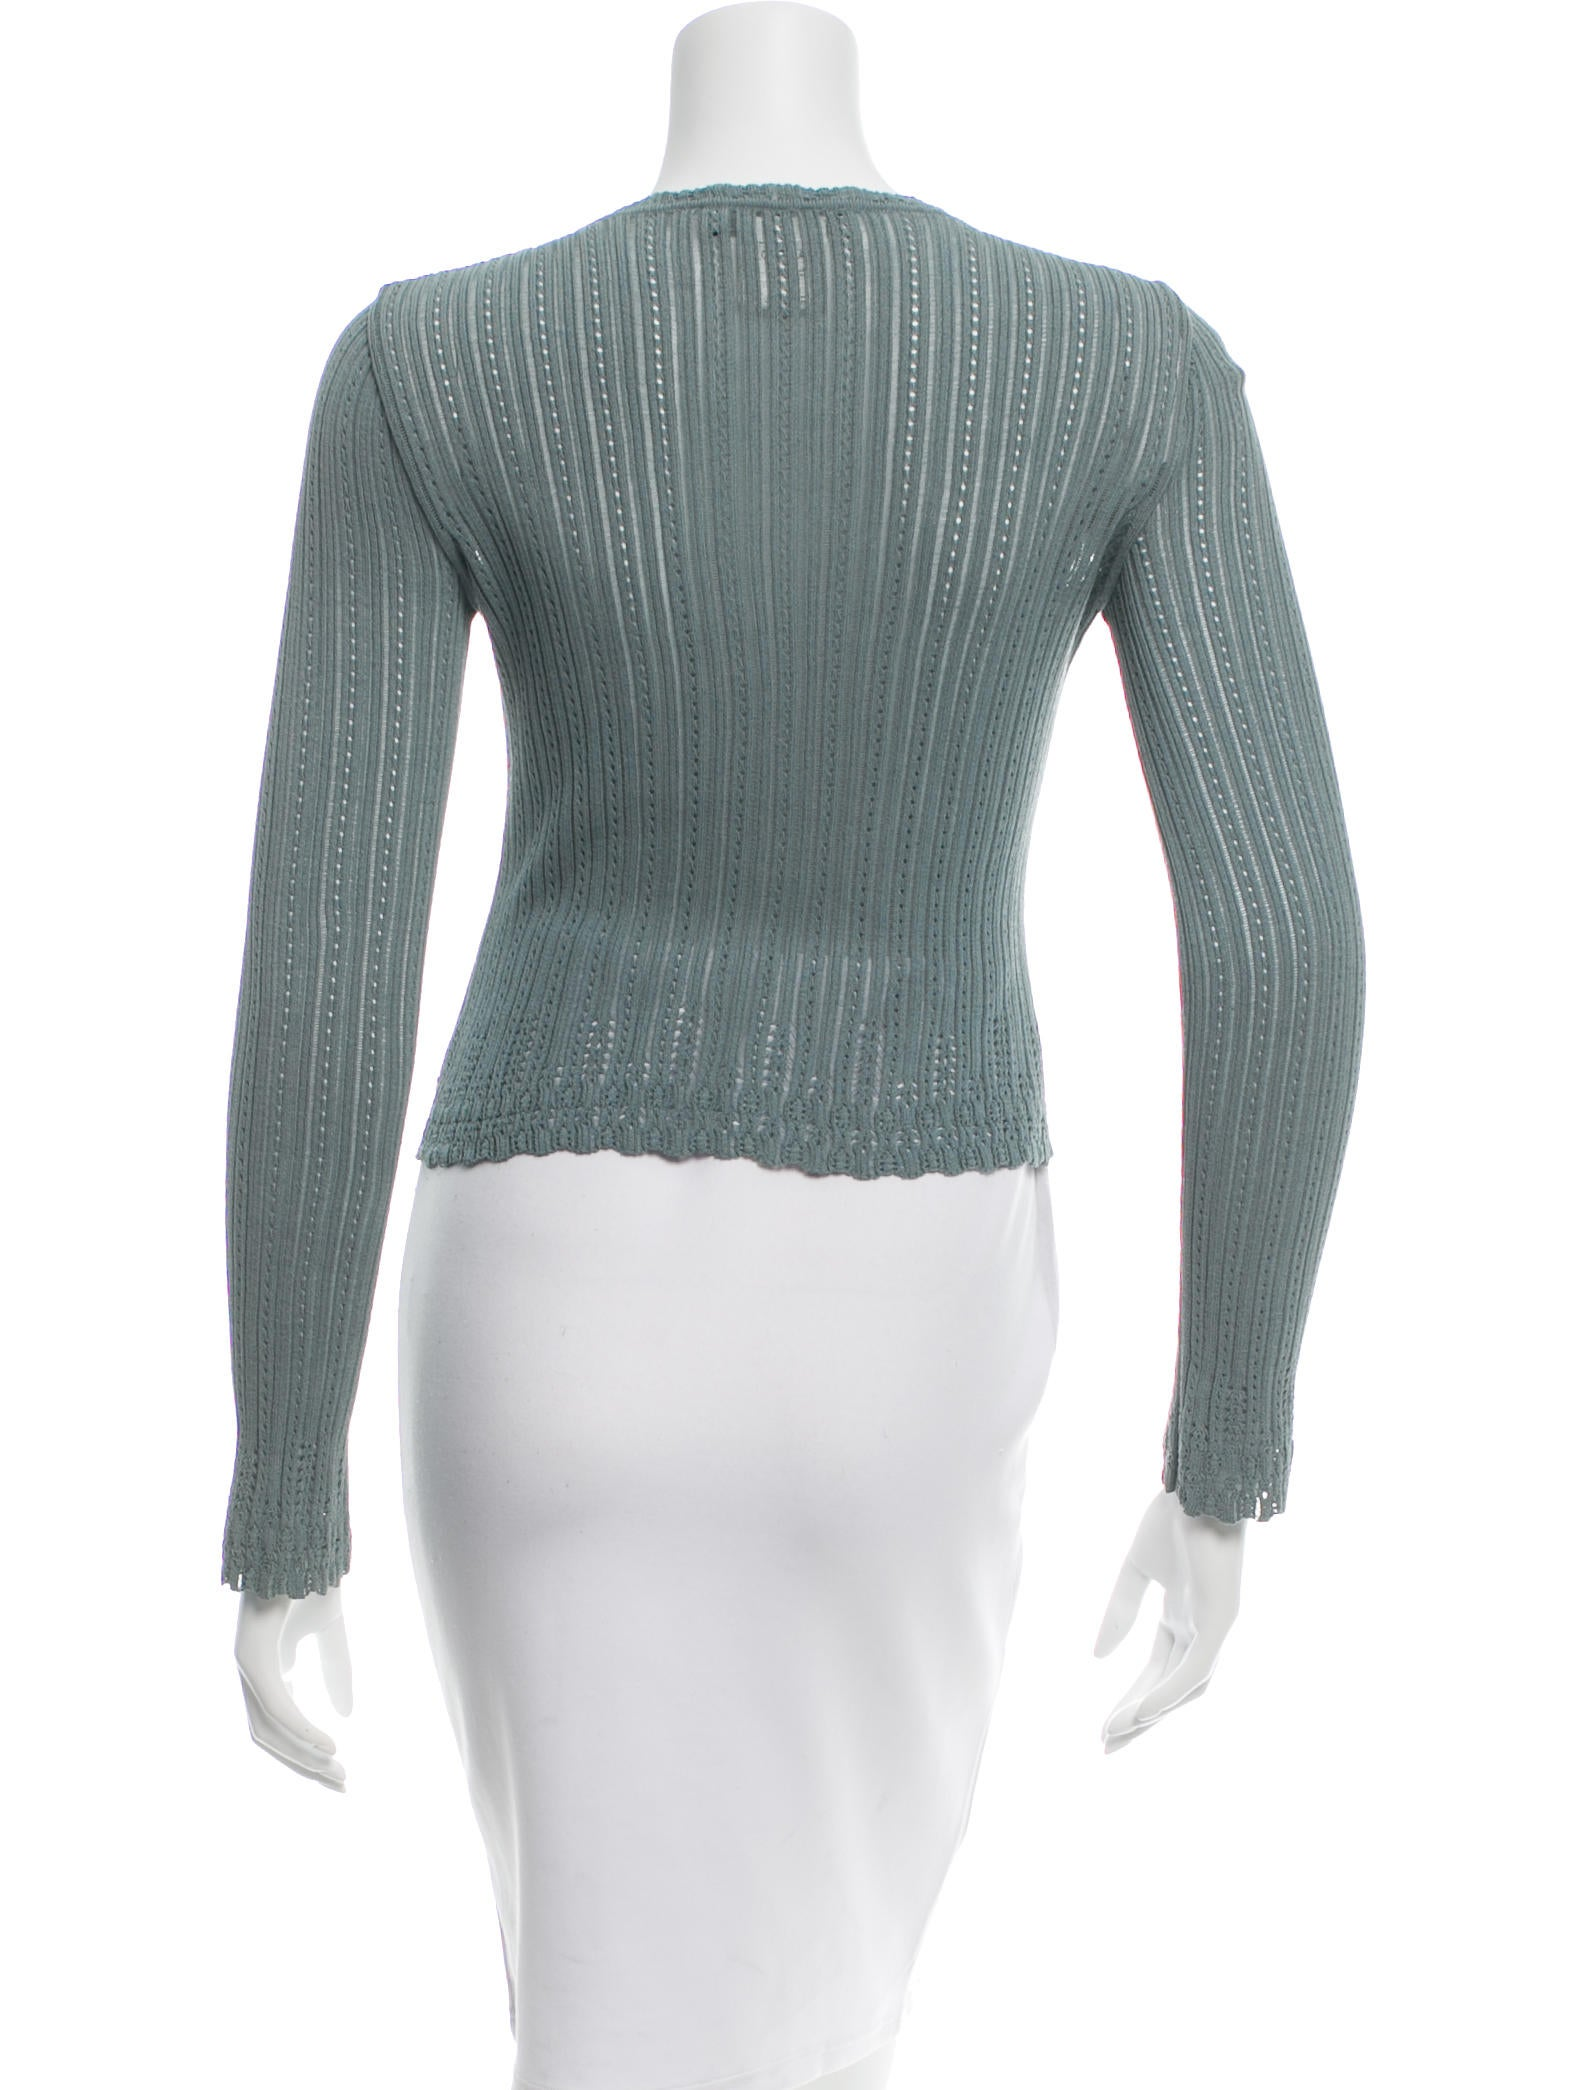 Christian dior long sleeve button up top clothing for Christian dior button up shirt